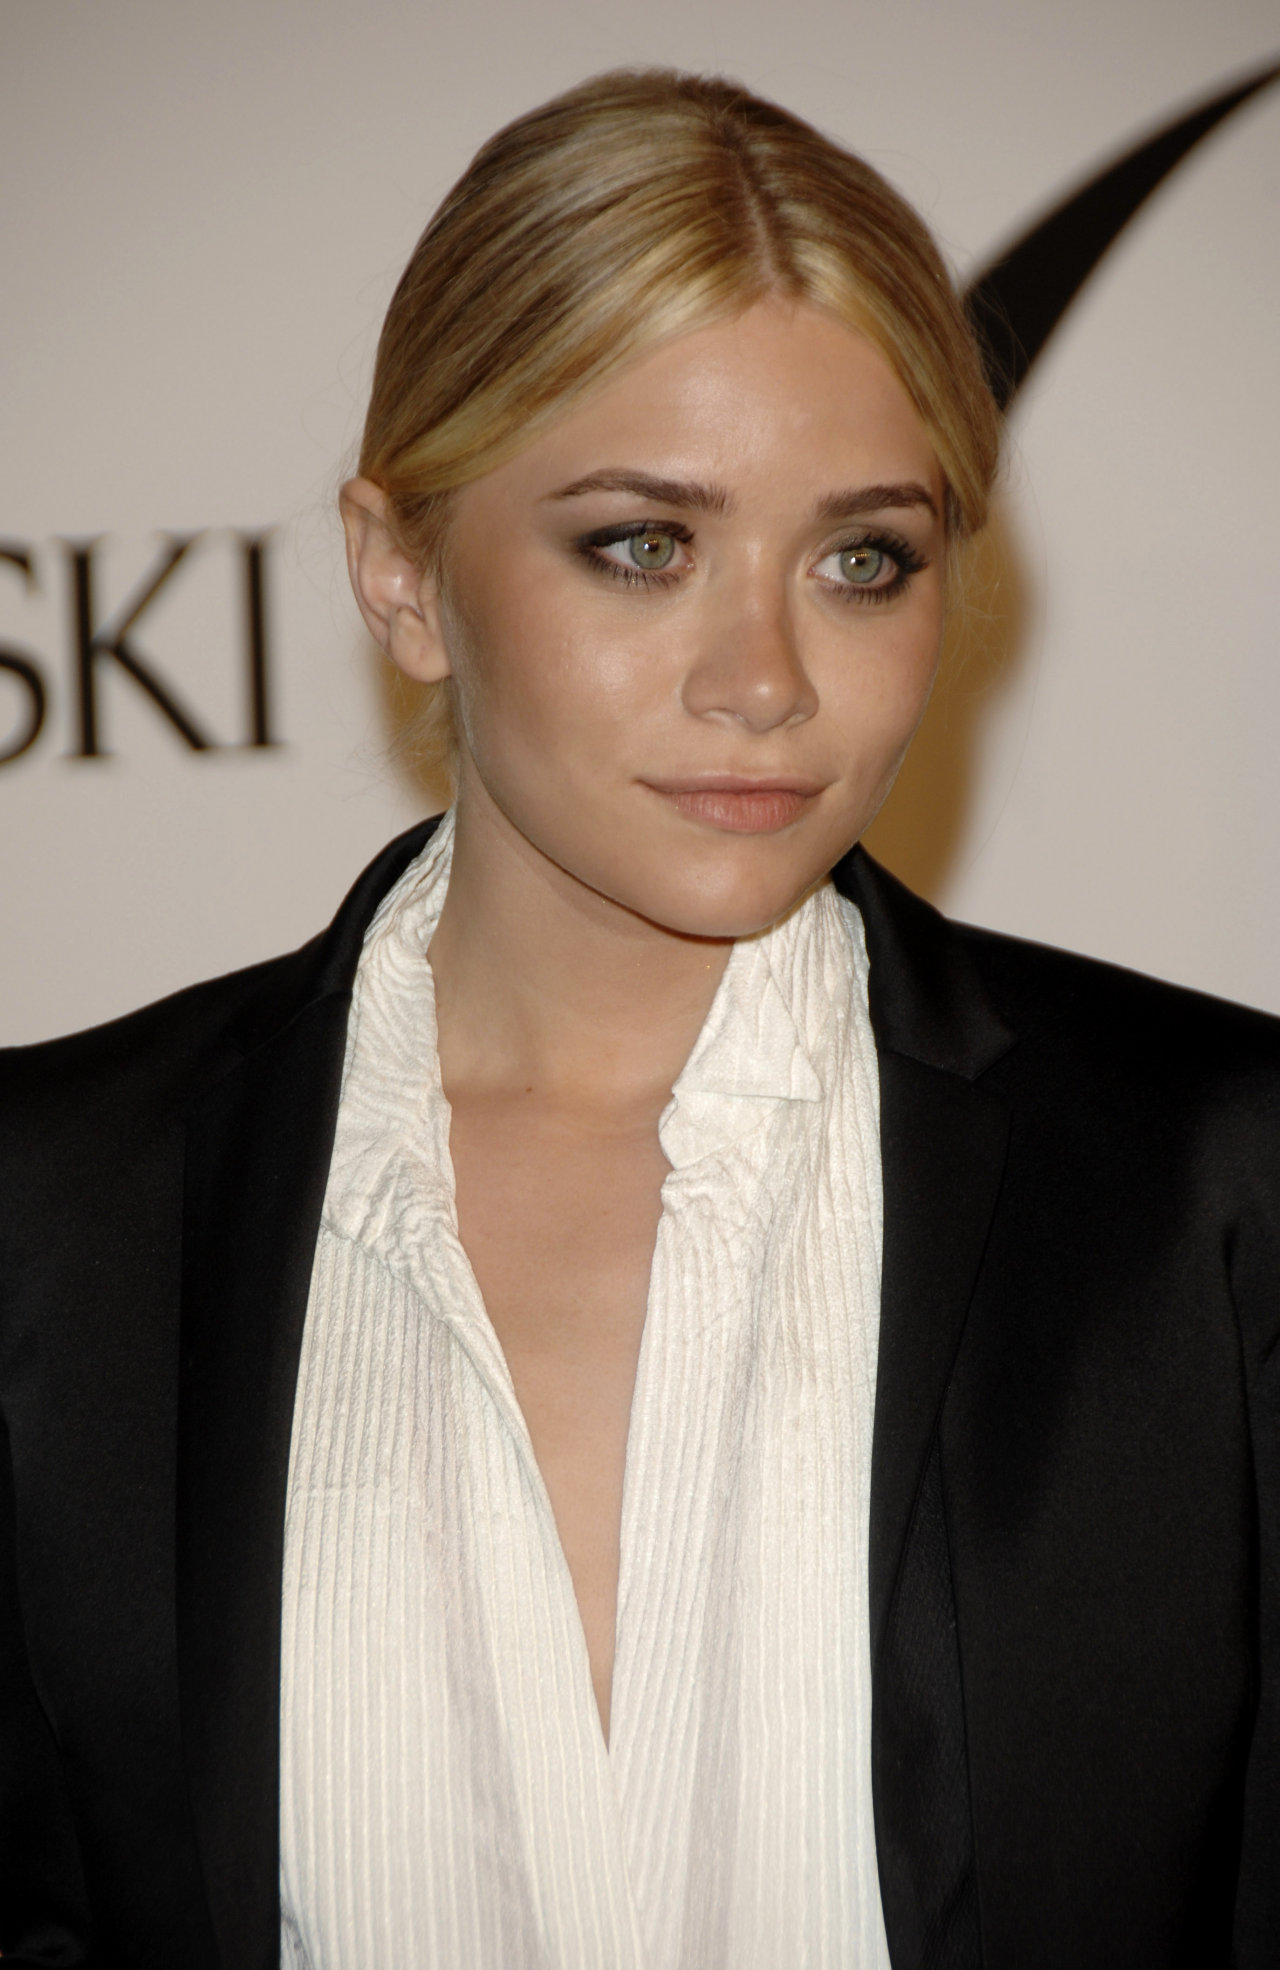 Ashley Olsen - Gallery Photo Colection